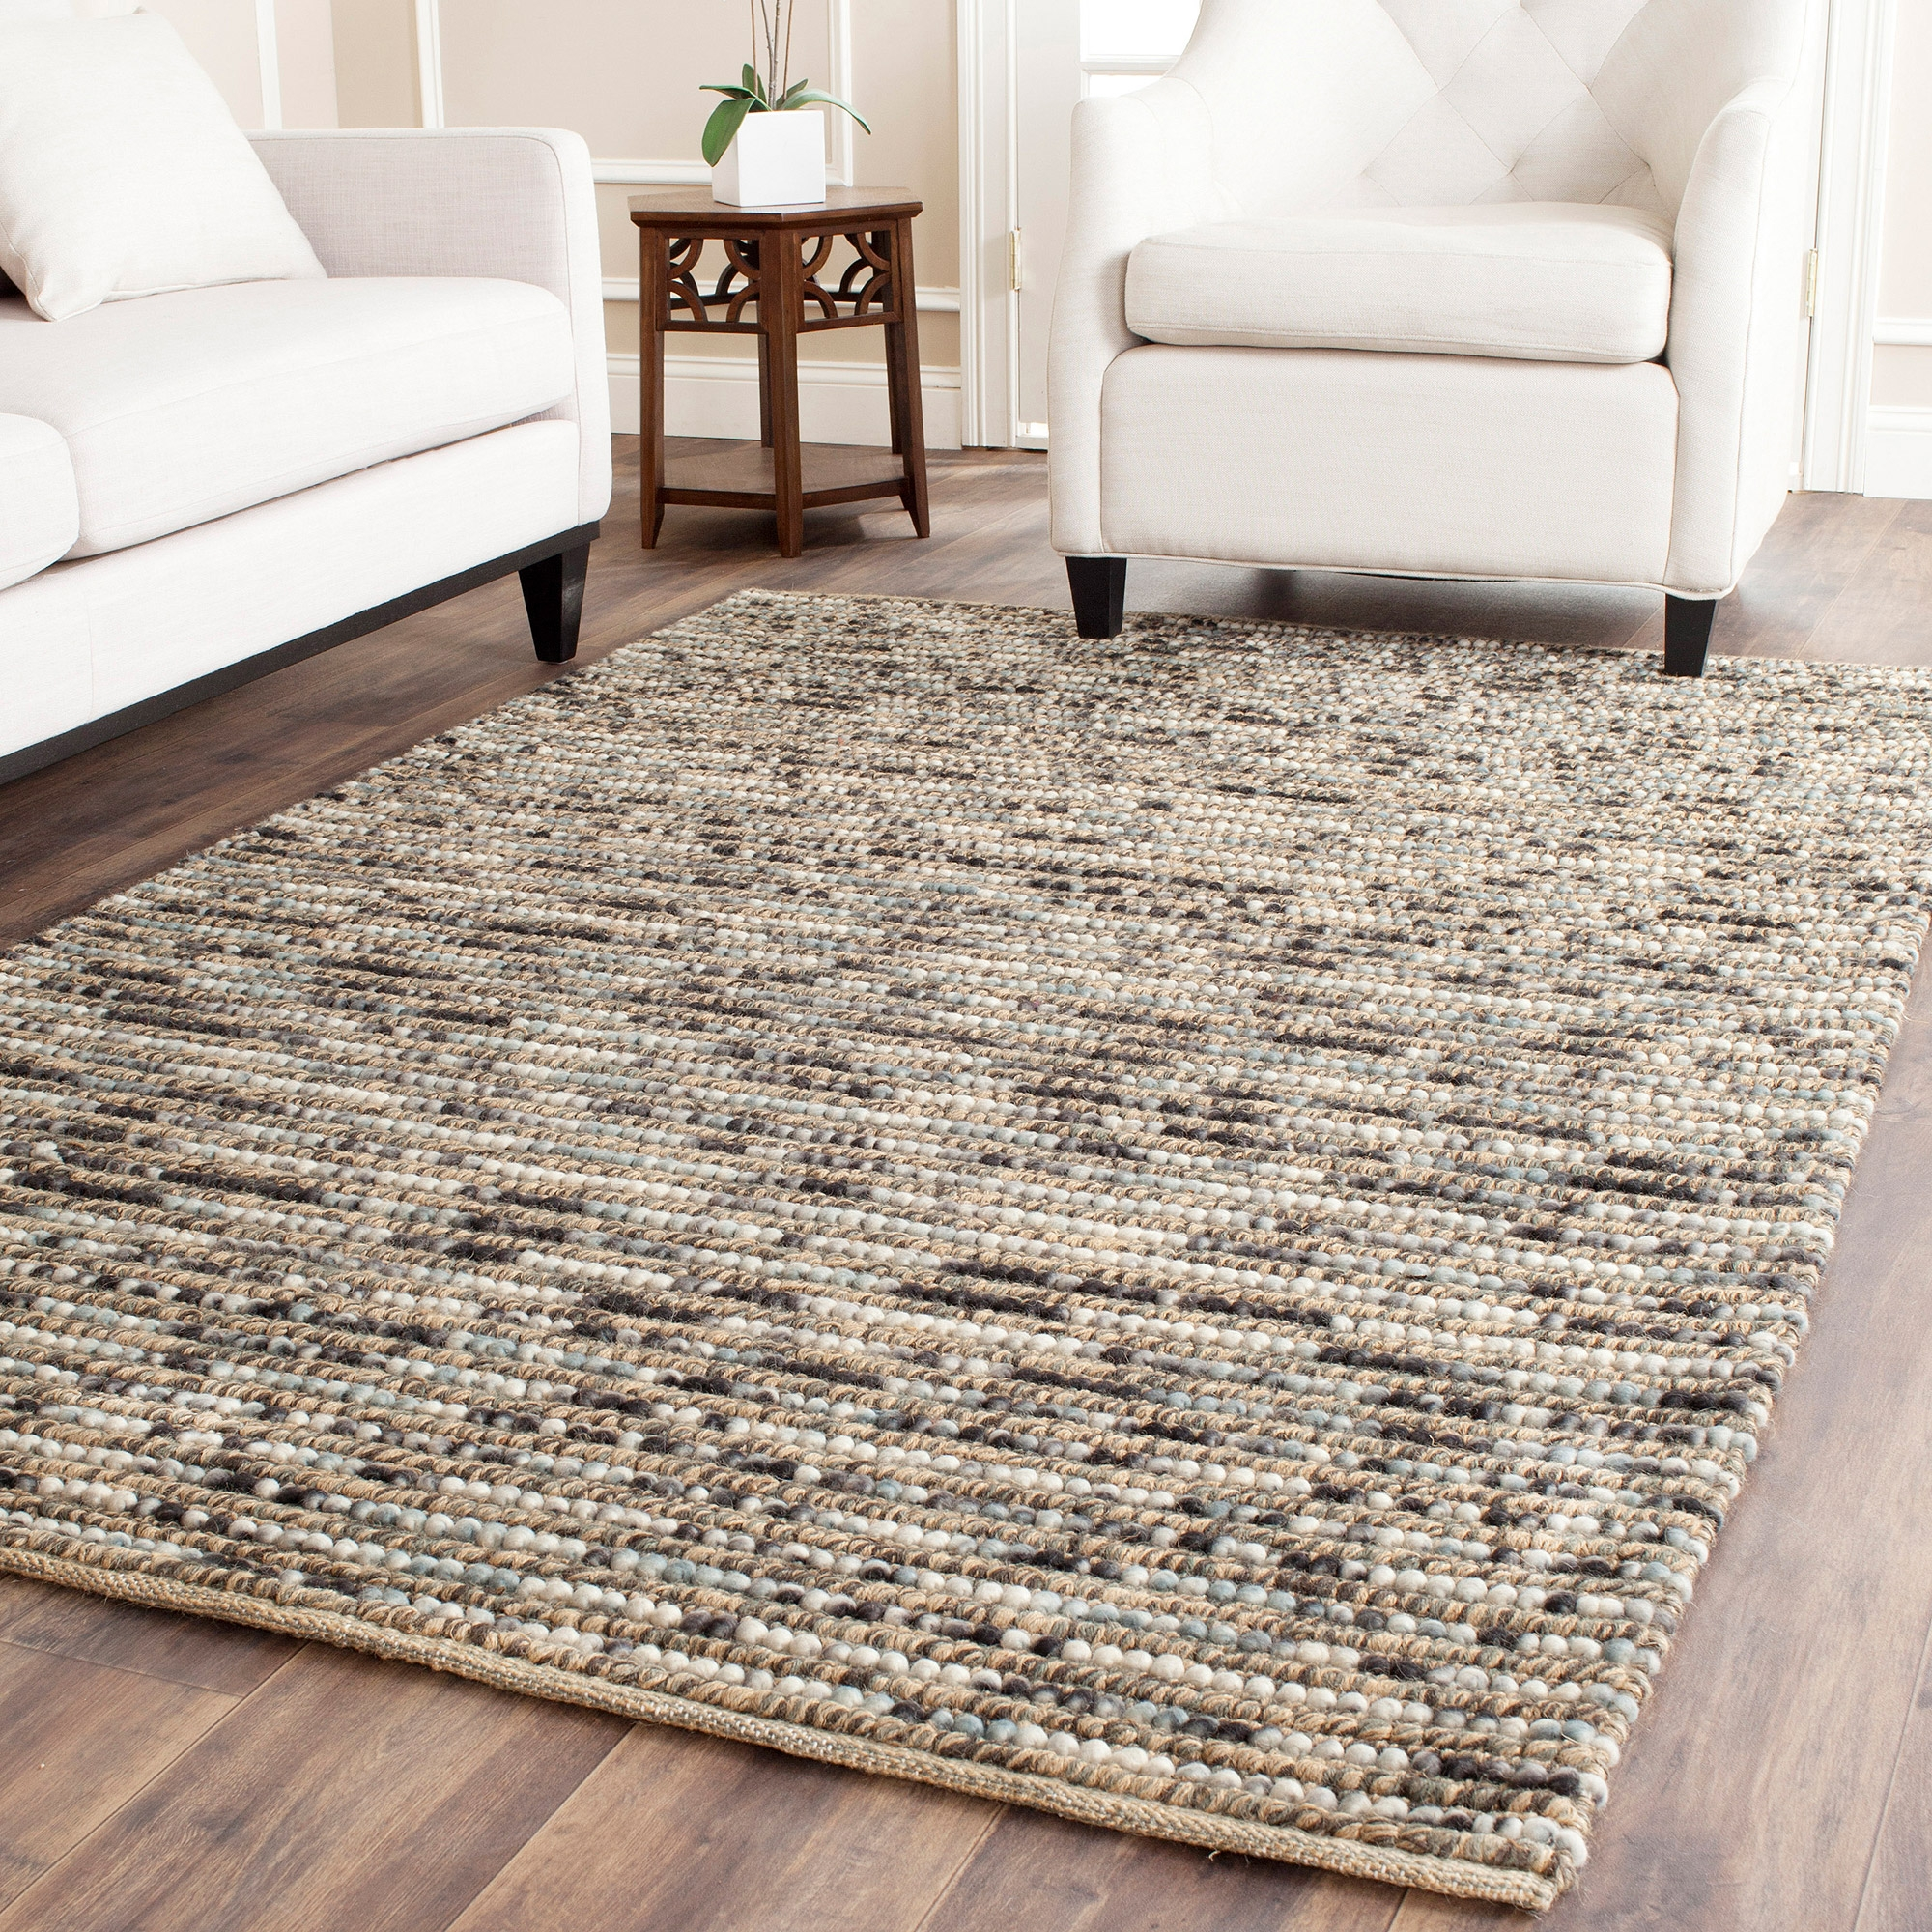 jute darbylanefurniture sisal com environment natural rug a to chunky soft rugs fibreworks safe fiber amazing use create wool